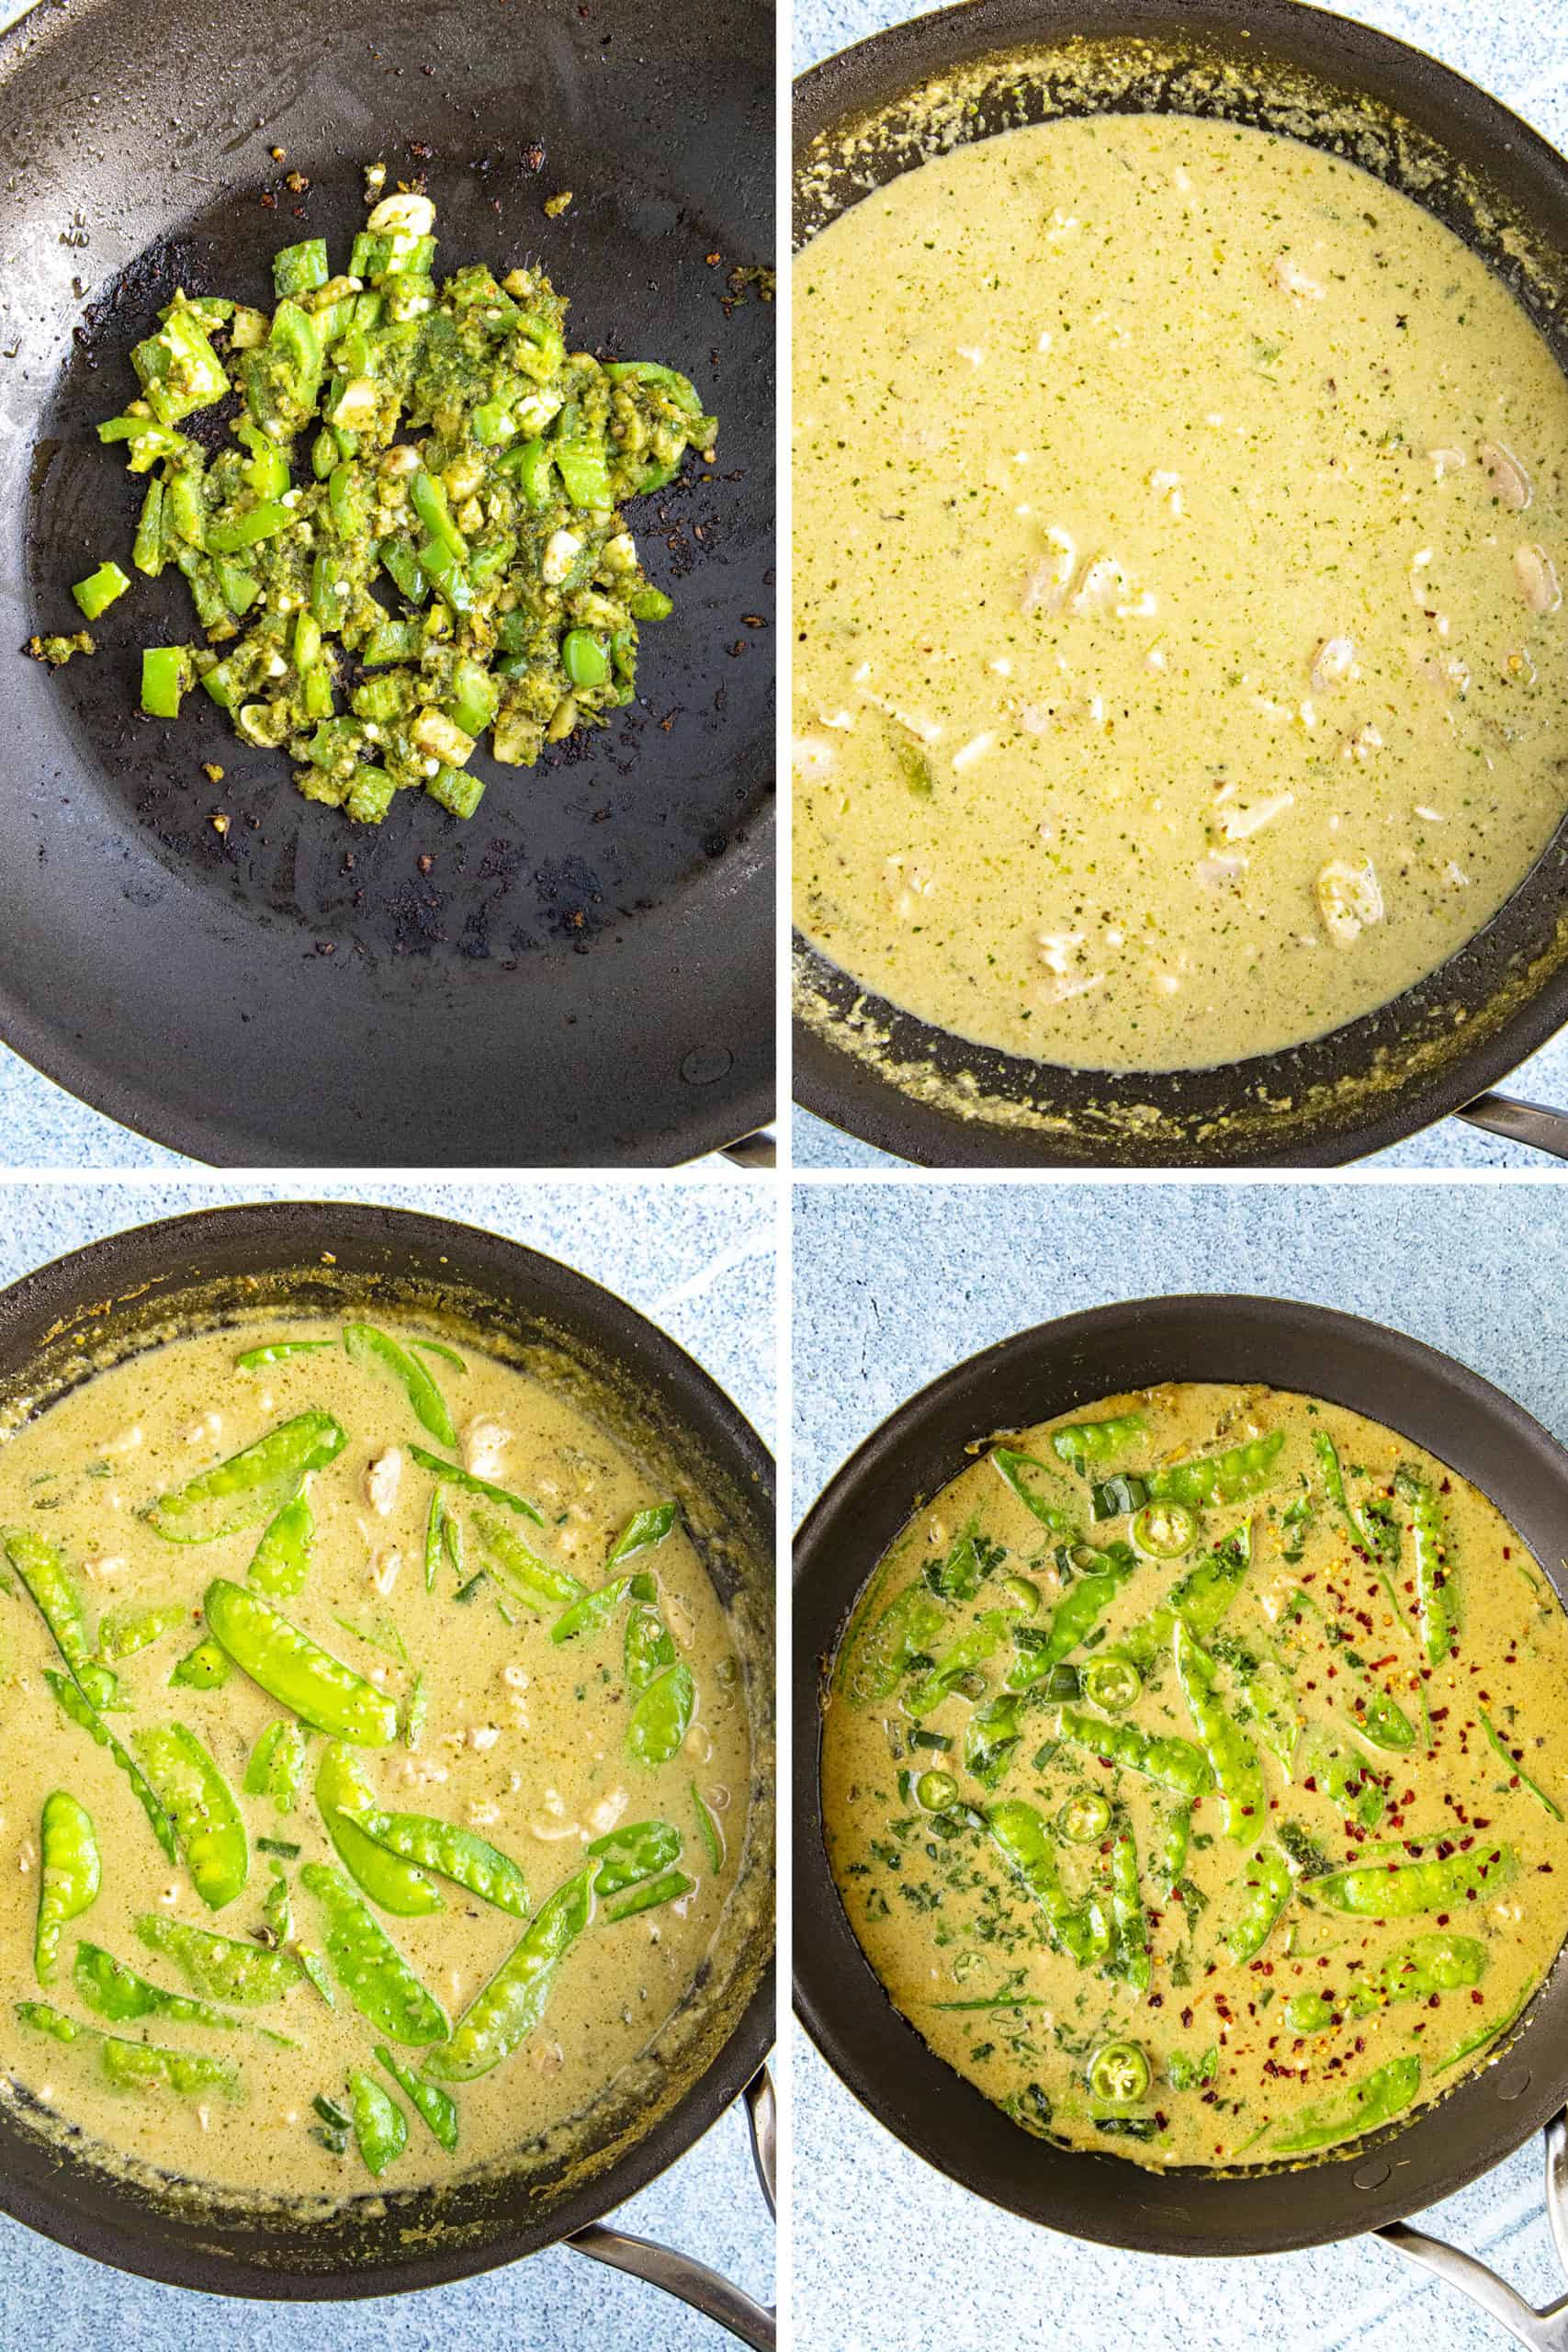 Steps to making green curry